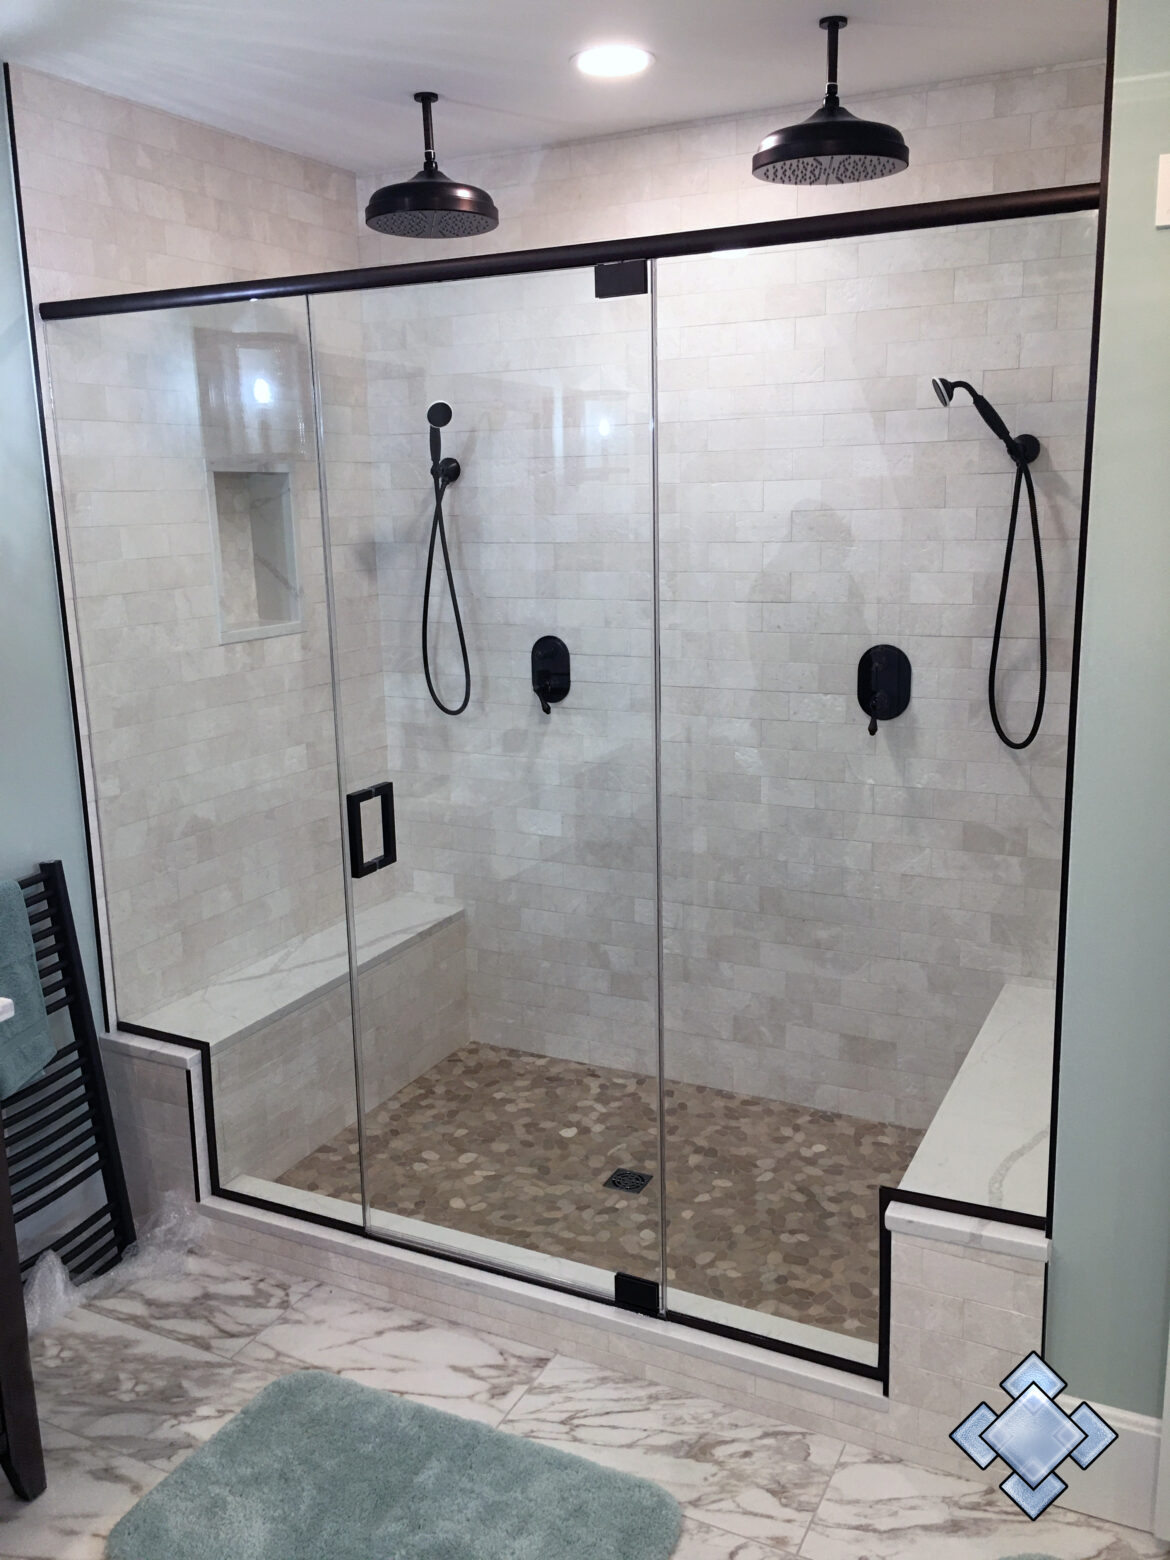 Shower door with oil rubbed bronze hardware and header